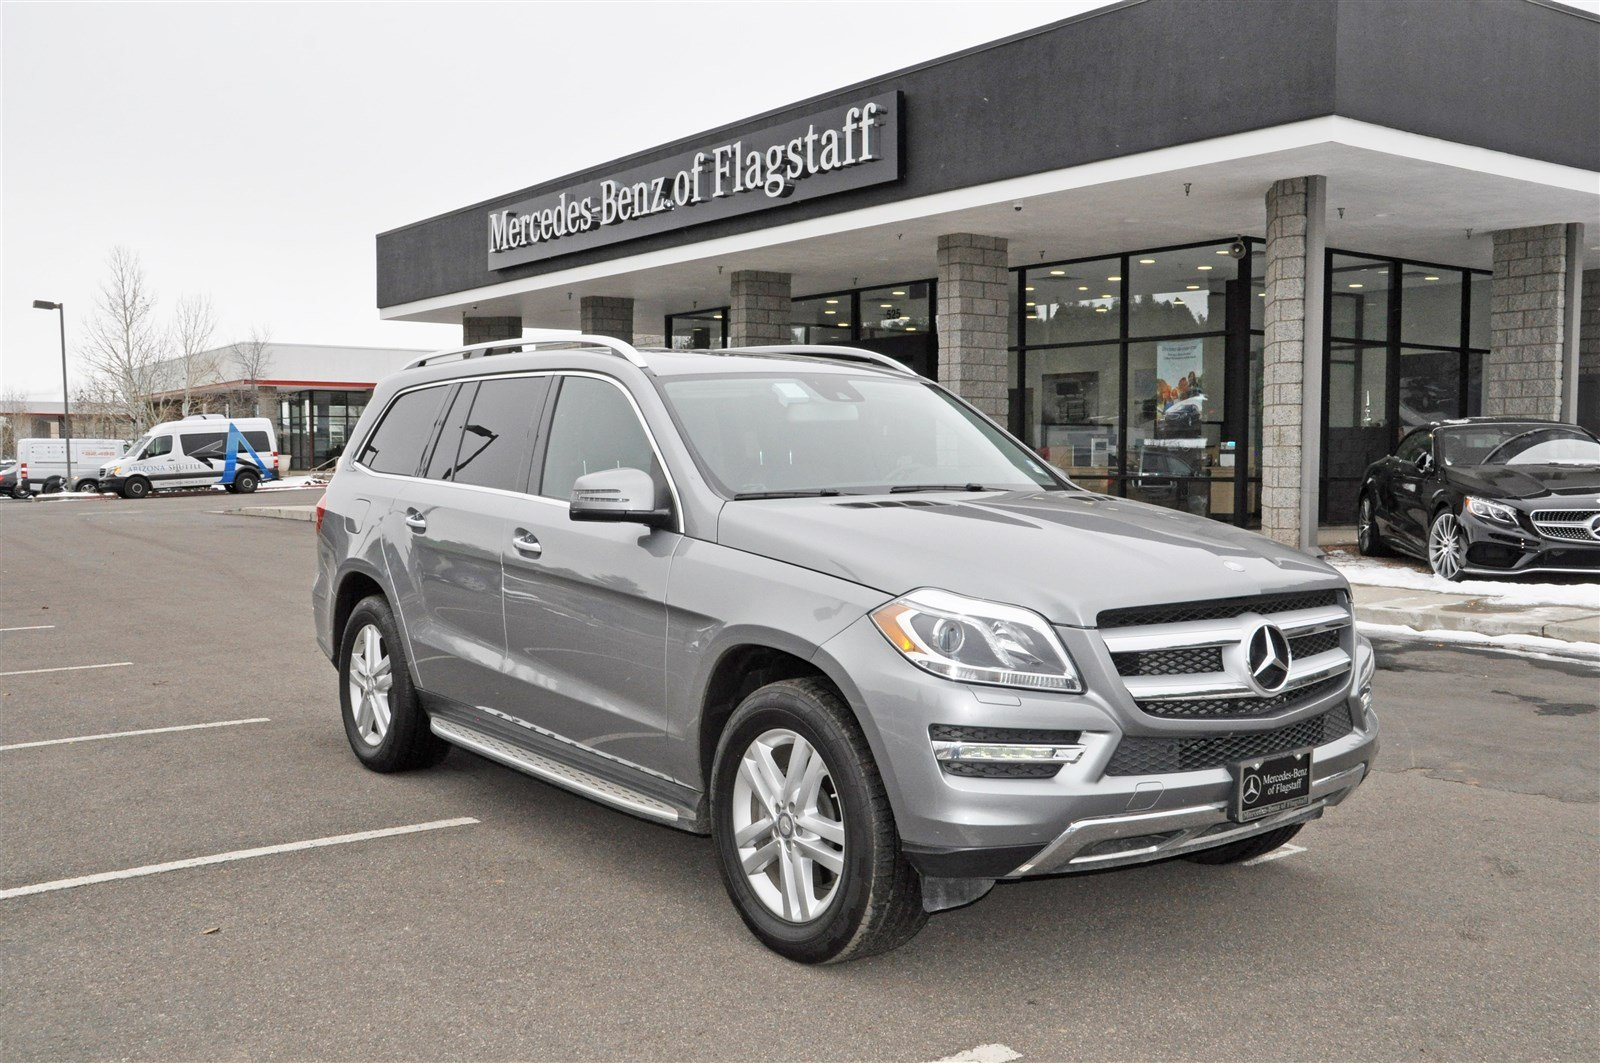 certified pre owned 2015 mercedes benz gl gl450 suv in flagstaff 5243p mercedes benz of flagstaff. Black Bedroom Furniture Sets. Home Design Ideas